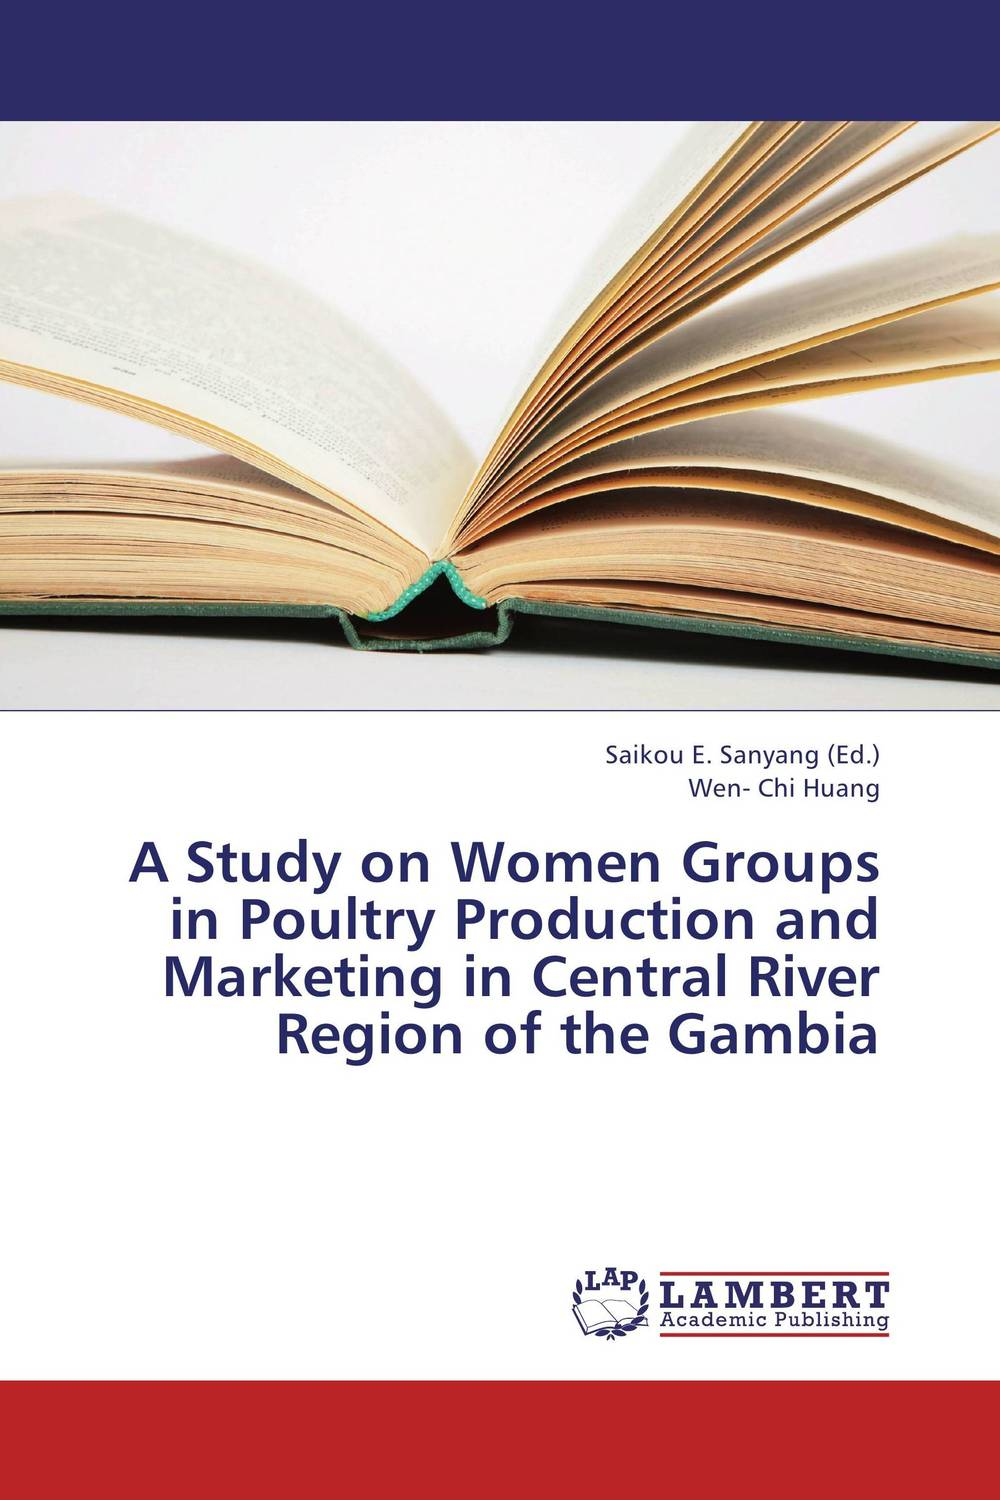 A Study on Women Groups in Poultry Production and Marketing in Central River Region of the Gambia kenneth rosen d investing in income properties the big six formula for achieving wealth in real estate